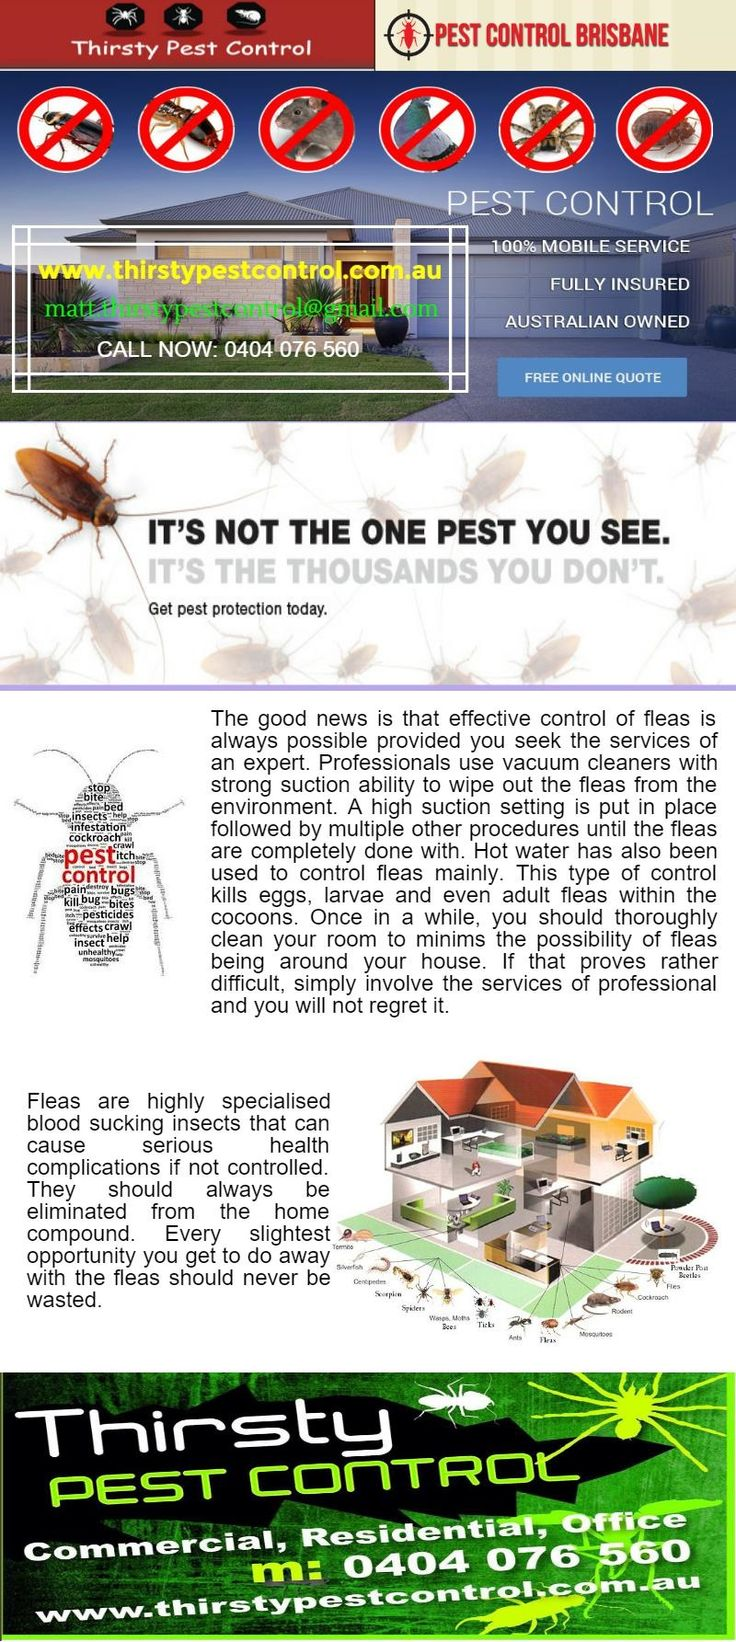 #Brisbane_pest_controllers    Fleas are highly specialised blood sucking insects that can cause serious health complications if not controlled. They should always be eliminated from the home compound.  thirstypestcontrol.wordpress.com/2016/03/05/fleas-pest-control-brisbane/